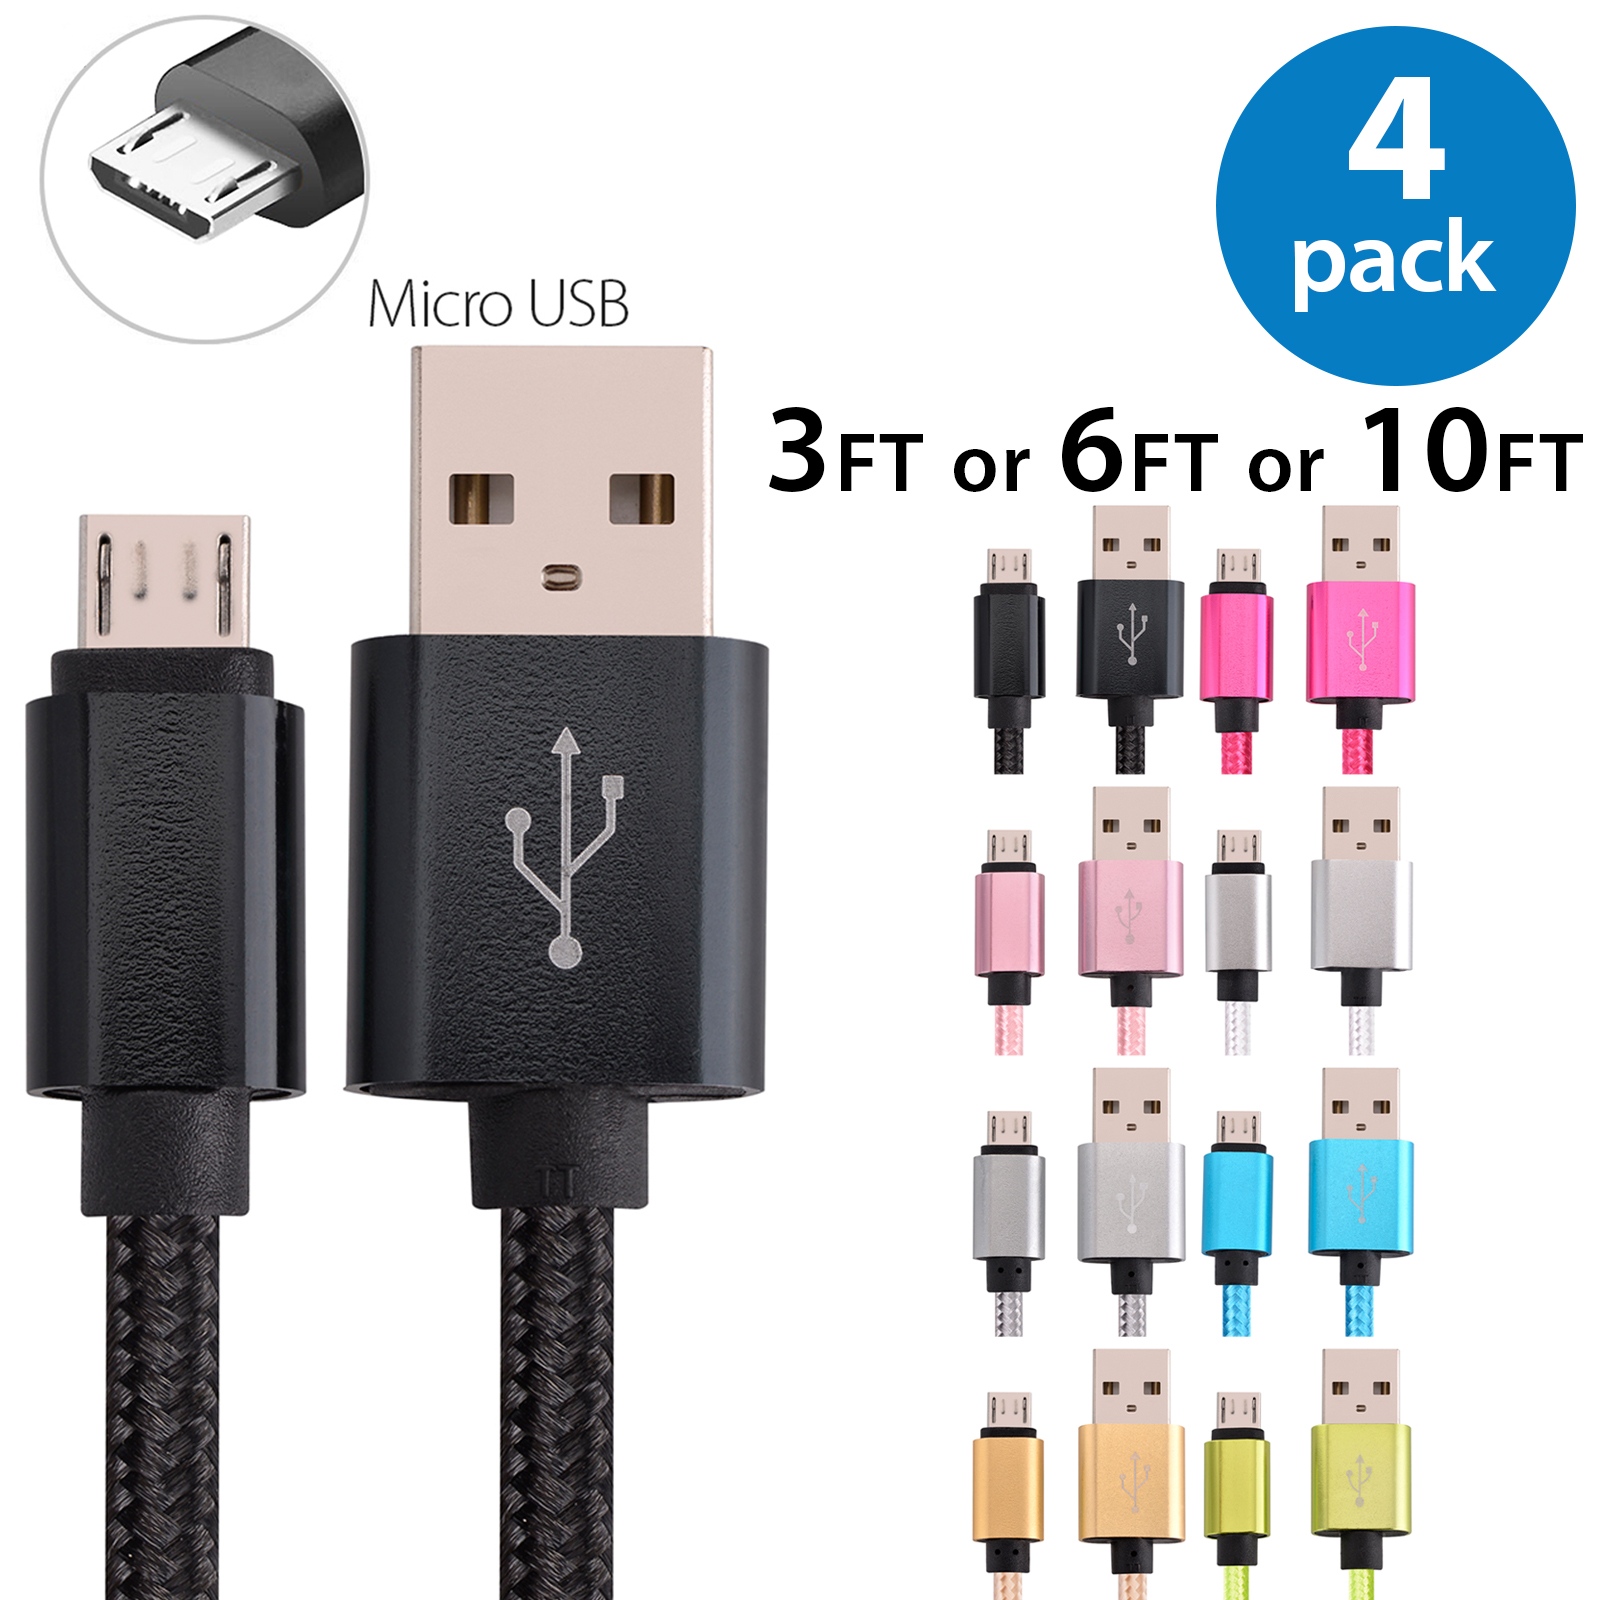 4x 10FT Afflux Micro USB Adaptive Fast Charging Cable Cord For Samsung Galaxy S7 S6 Edge S4 S3 Note 2 4 5 Grand Prime LG G3 G4 Stylo HTC M7 M8 M9 Desire 626 OnePlus 1 2 Nexus 5 6 Nokia Lumia Black